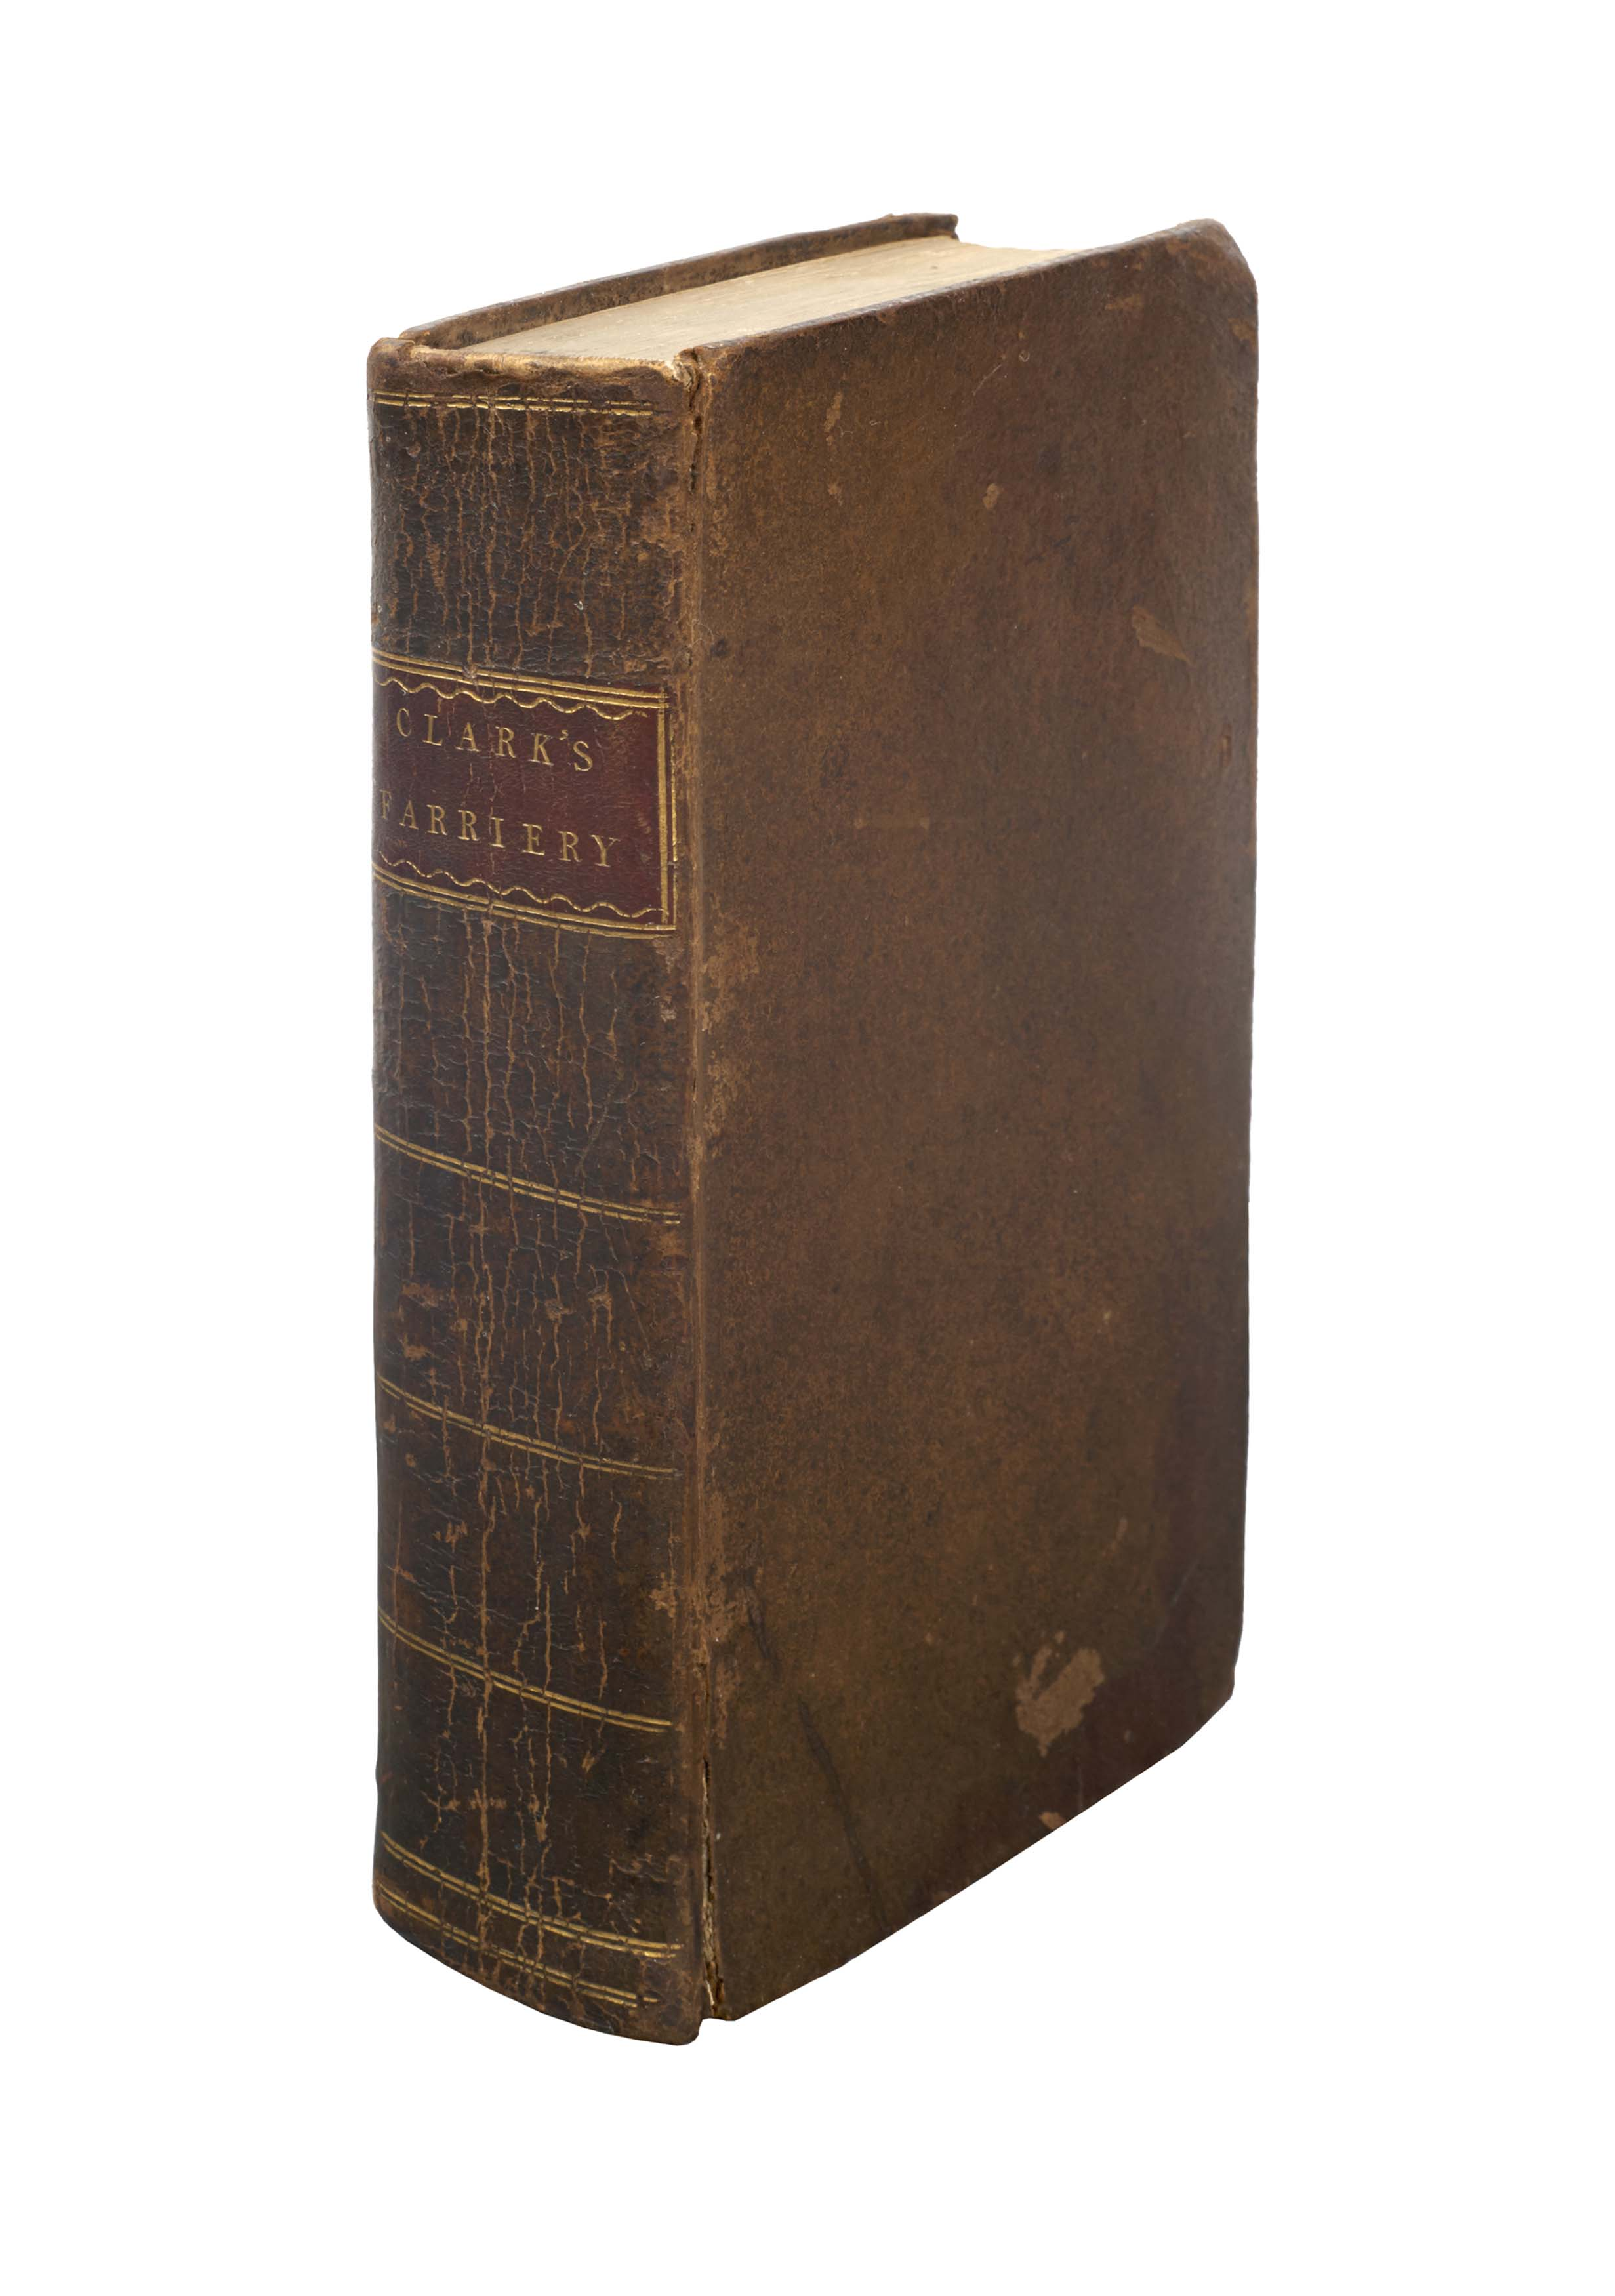 A Treatise on the Prevention of Diseases incidental to Horses, from bad Management in Regard to Stables, Food, Water, Air, and Exercise, to which are subjoined Observations on some of the surgical and medical Branches of Farriery … second Edition, corrected and enlarged.